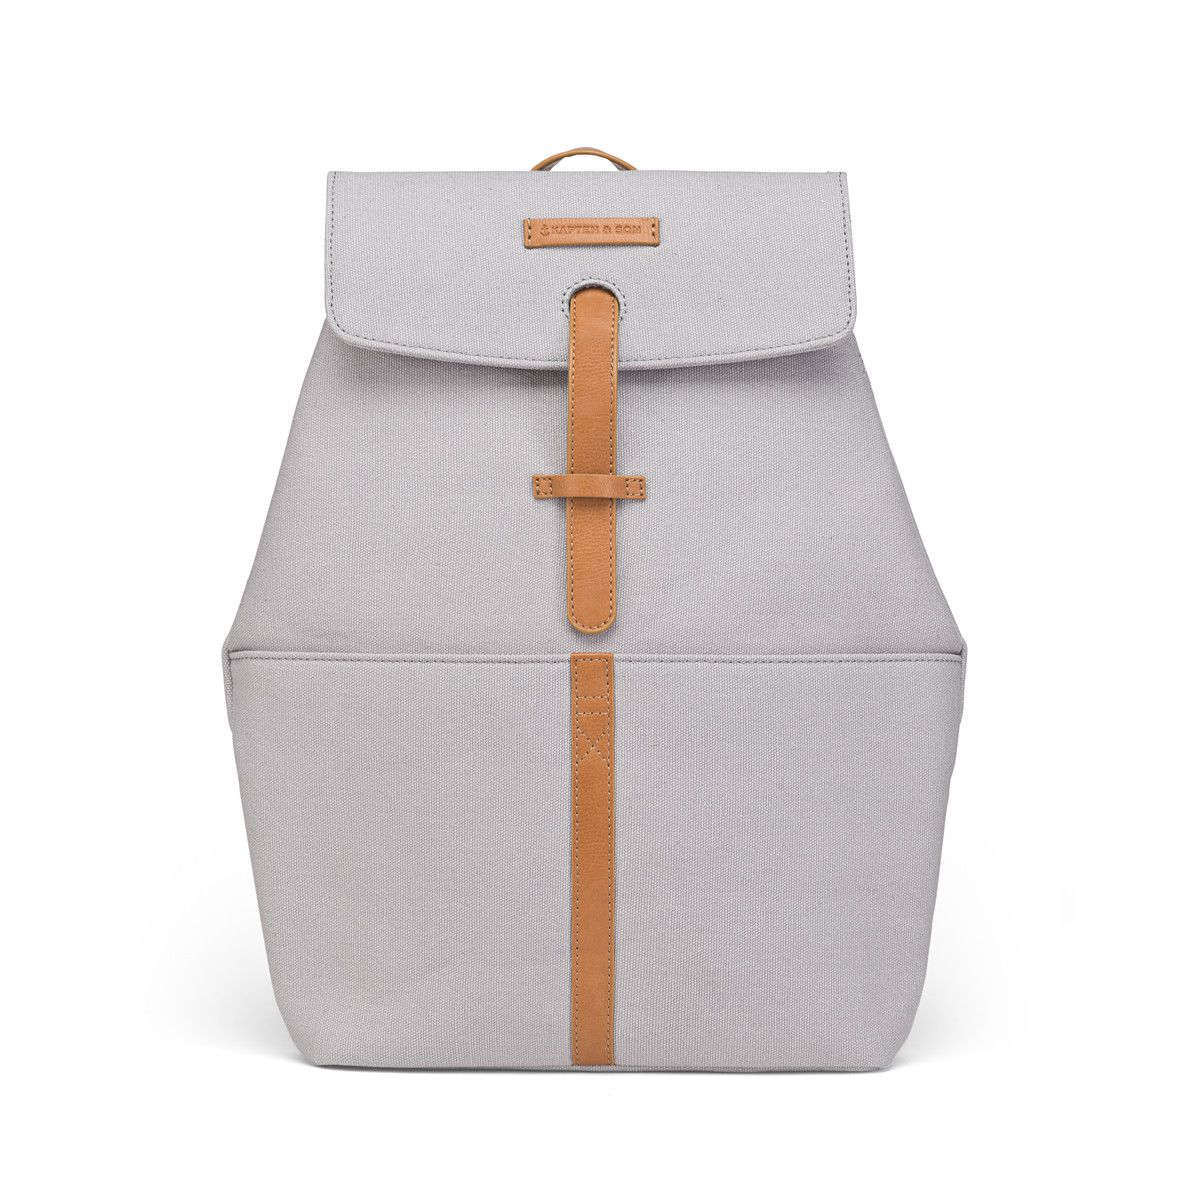 07eb948de907a Small grey backpack for women made of water-repellent canvas featuring  details made of vegan faux leather and a padded 14-inch laptop pocket. Shop  now!